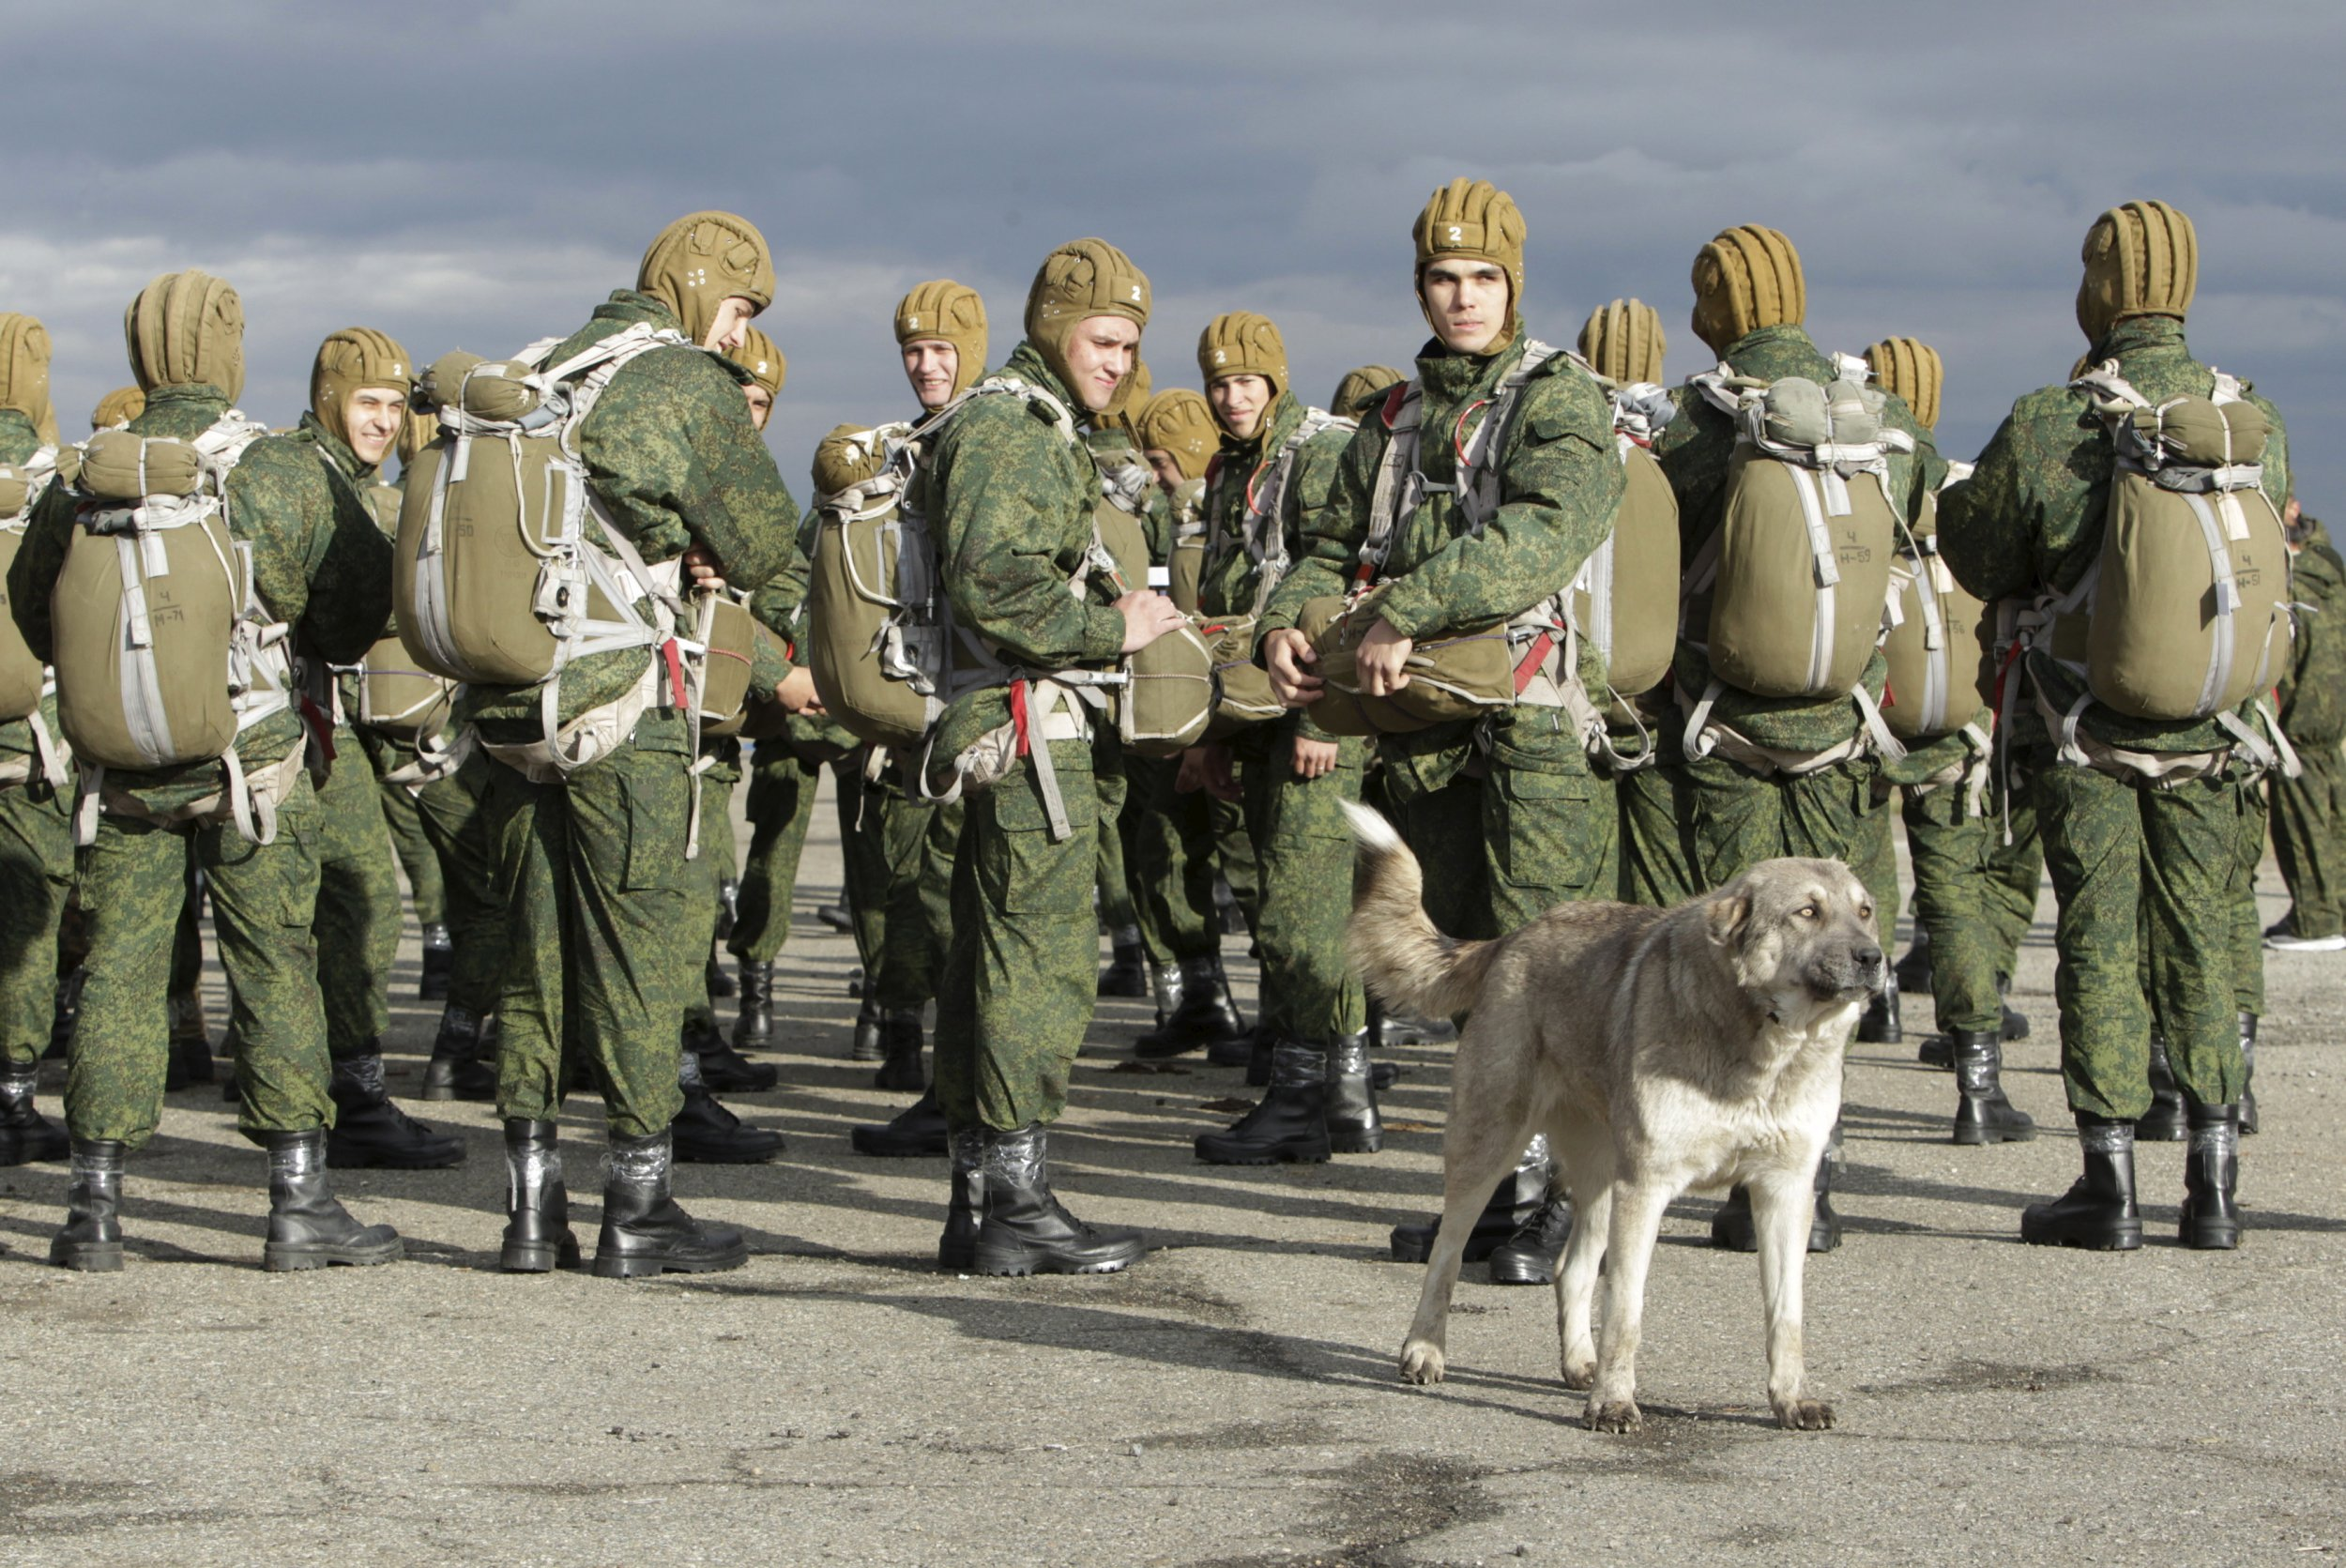 Russia To Deploy Soldiers For First Ever Drill In Africa